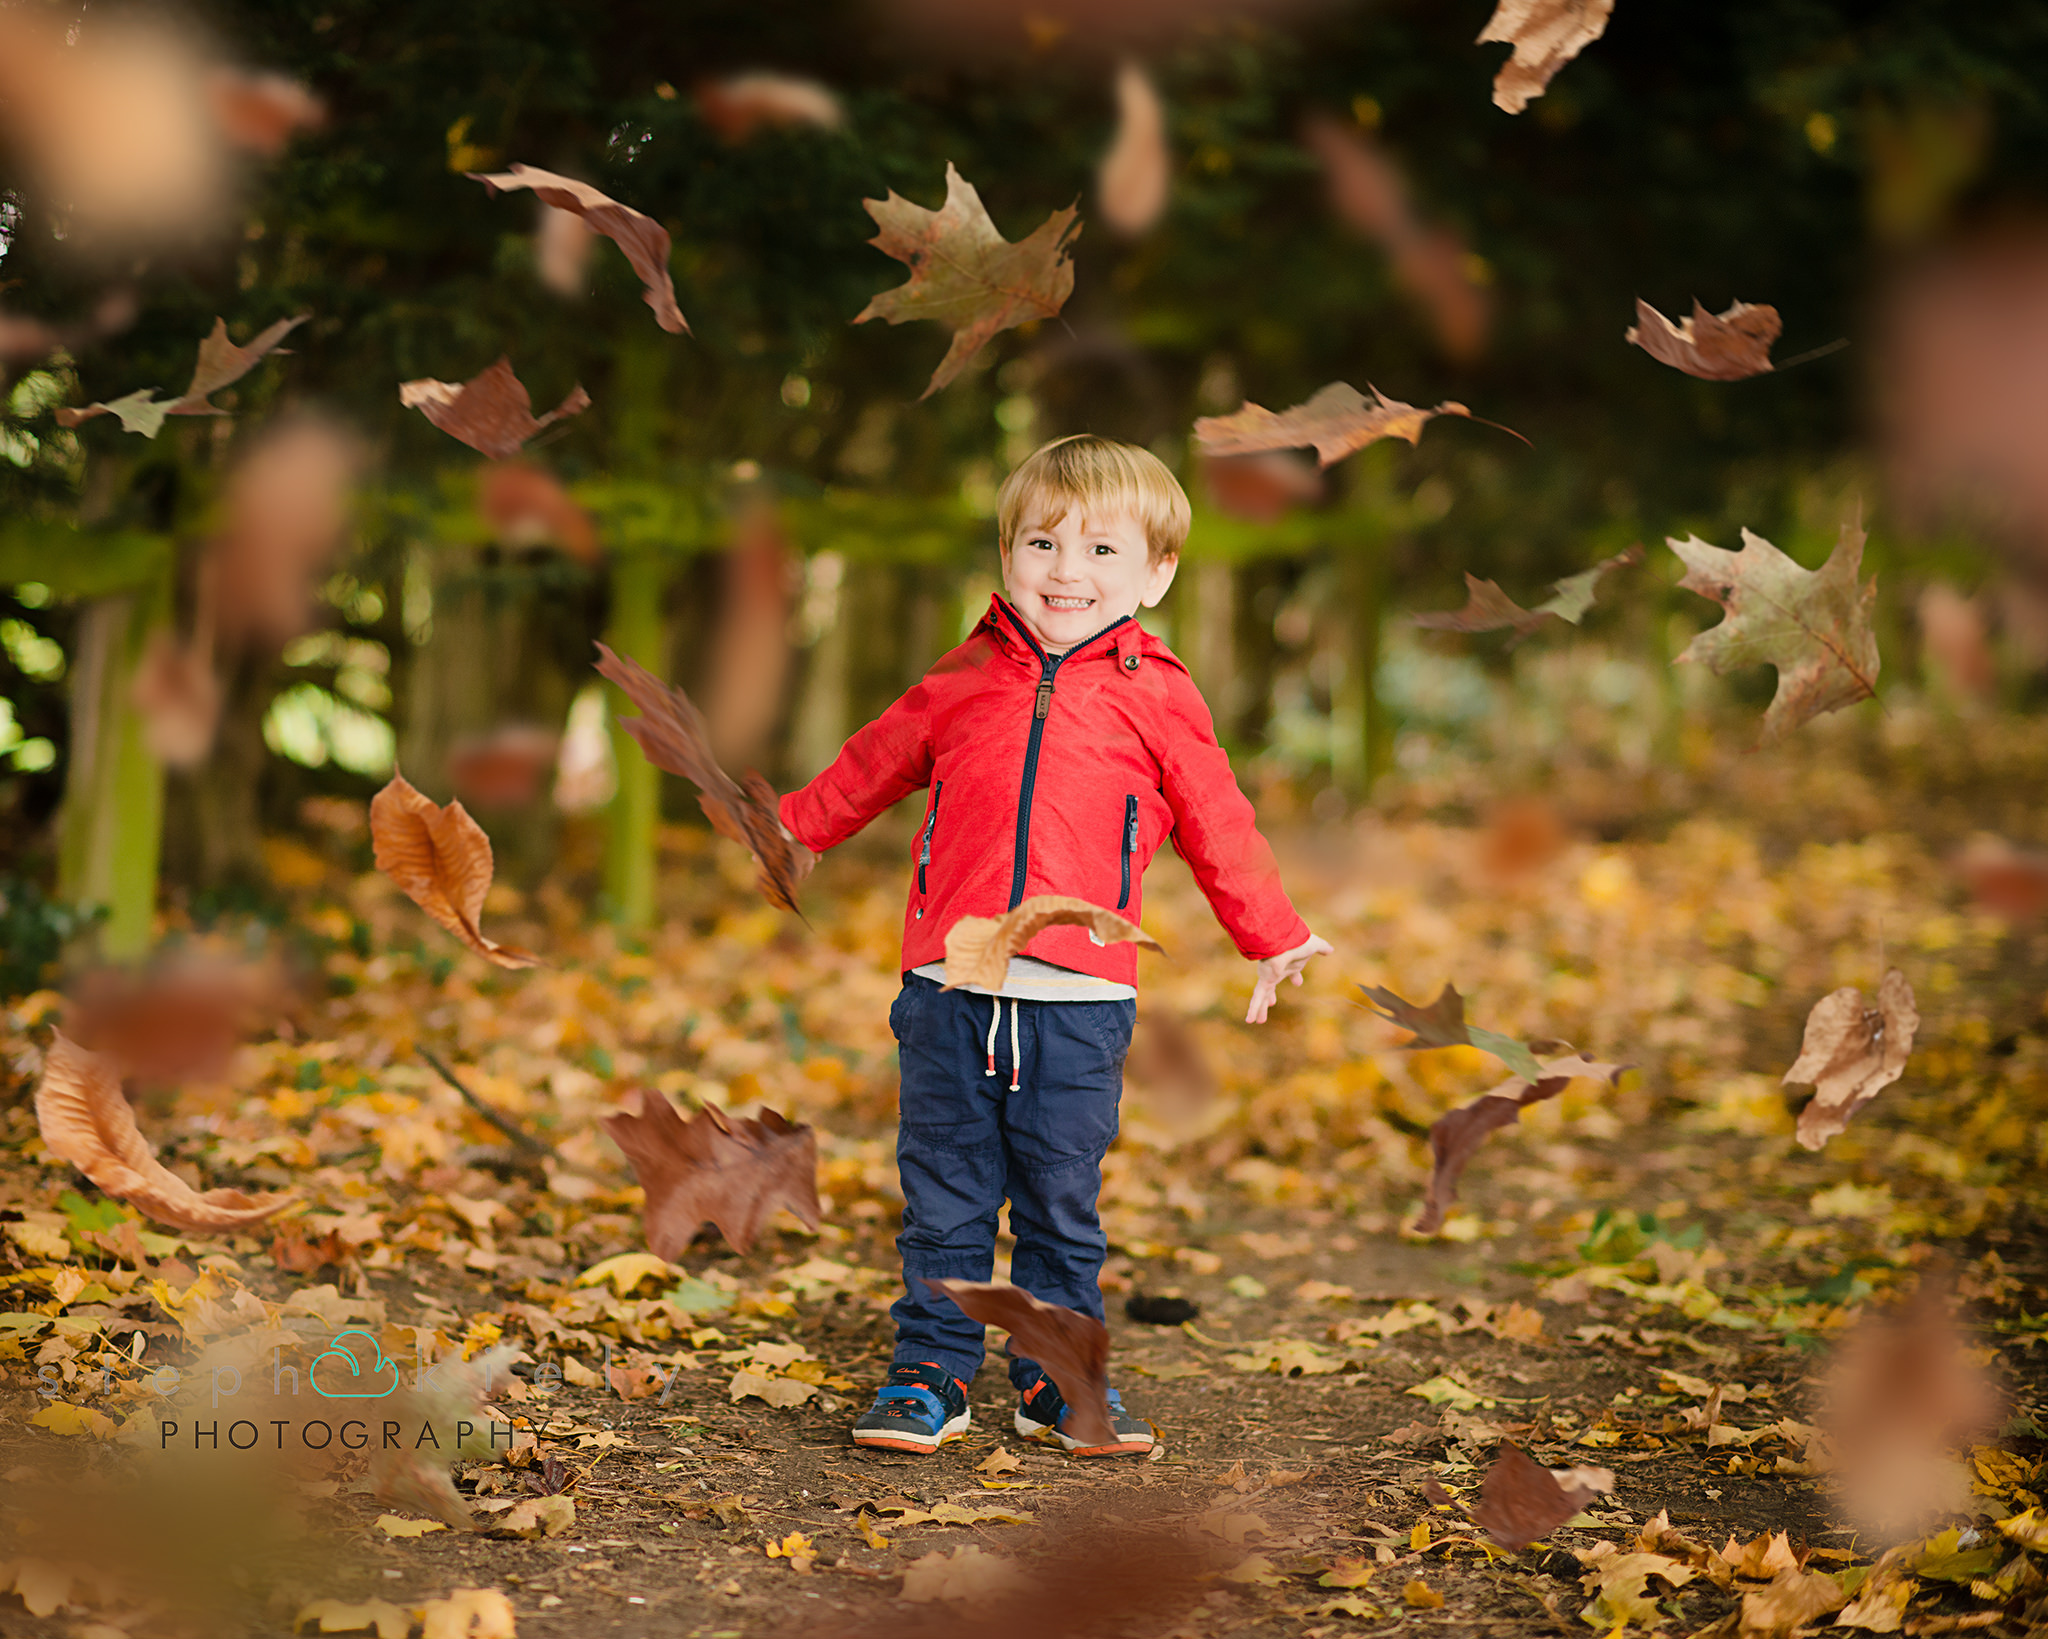 Little boy in a red coat throwing leaves in the air | Children's Photographer Aylesbury Buckinghamshire and Thame Oxfordshire